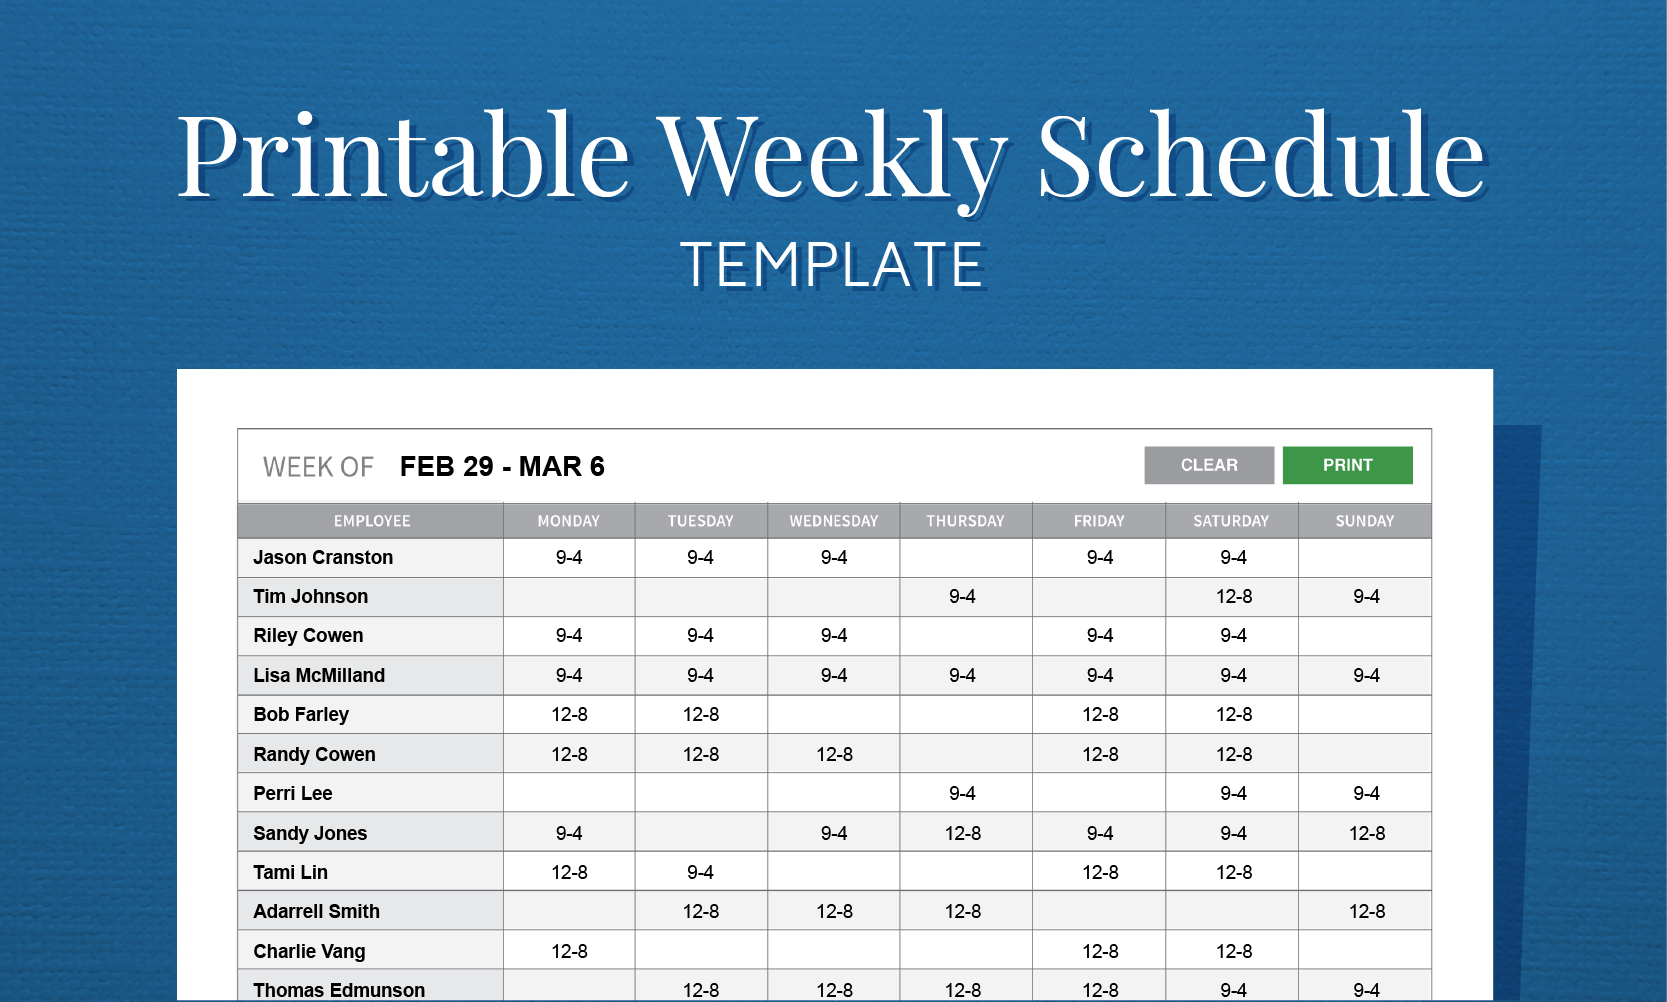 Free Printable Weekly Work Schedule Template For Employee Scheduling In Employee Work Schedule Spreadsheet